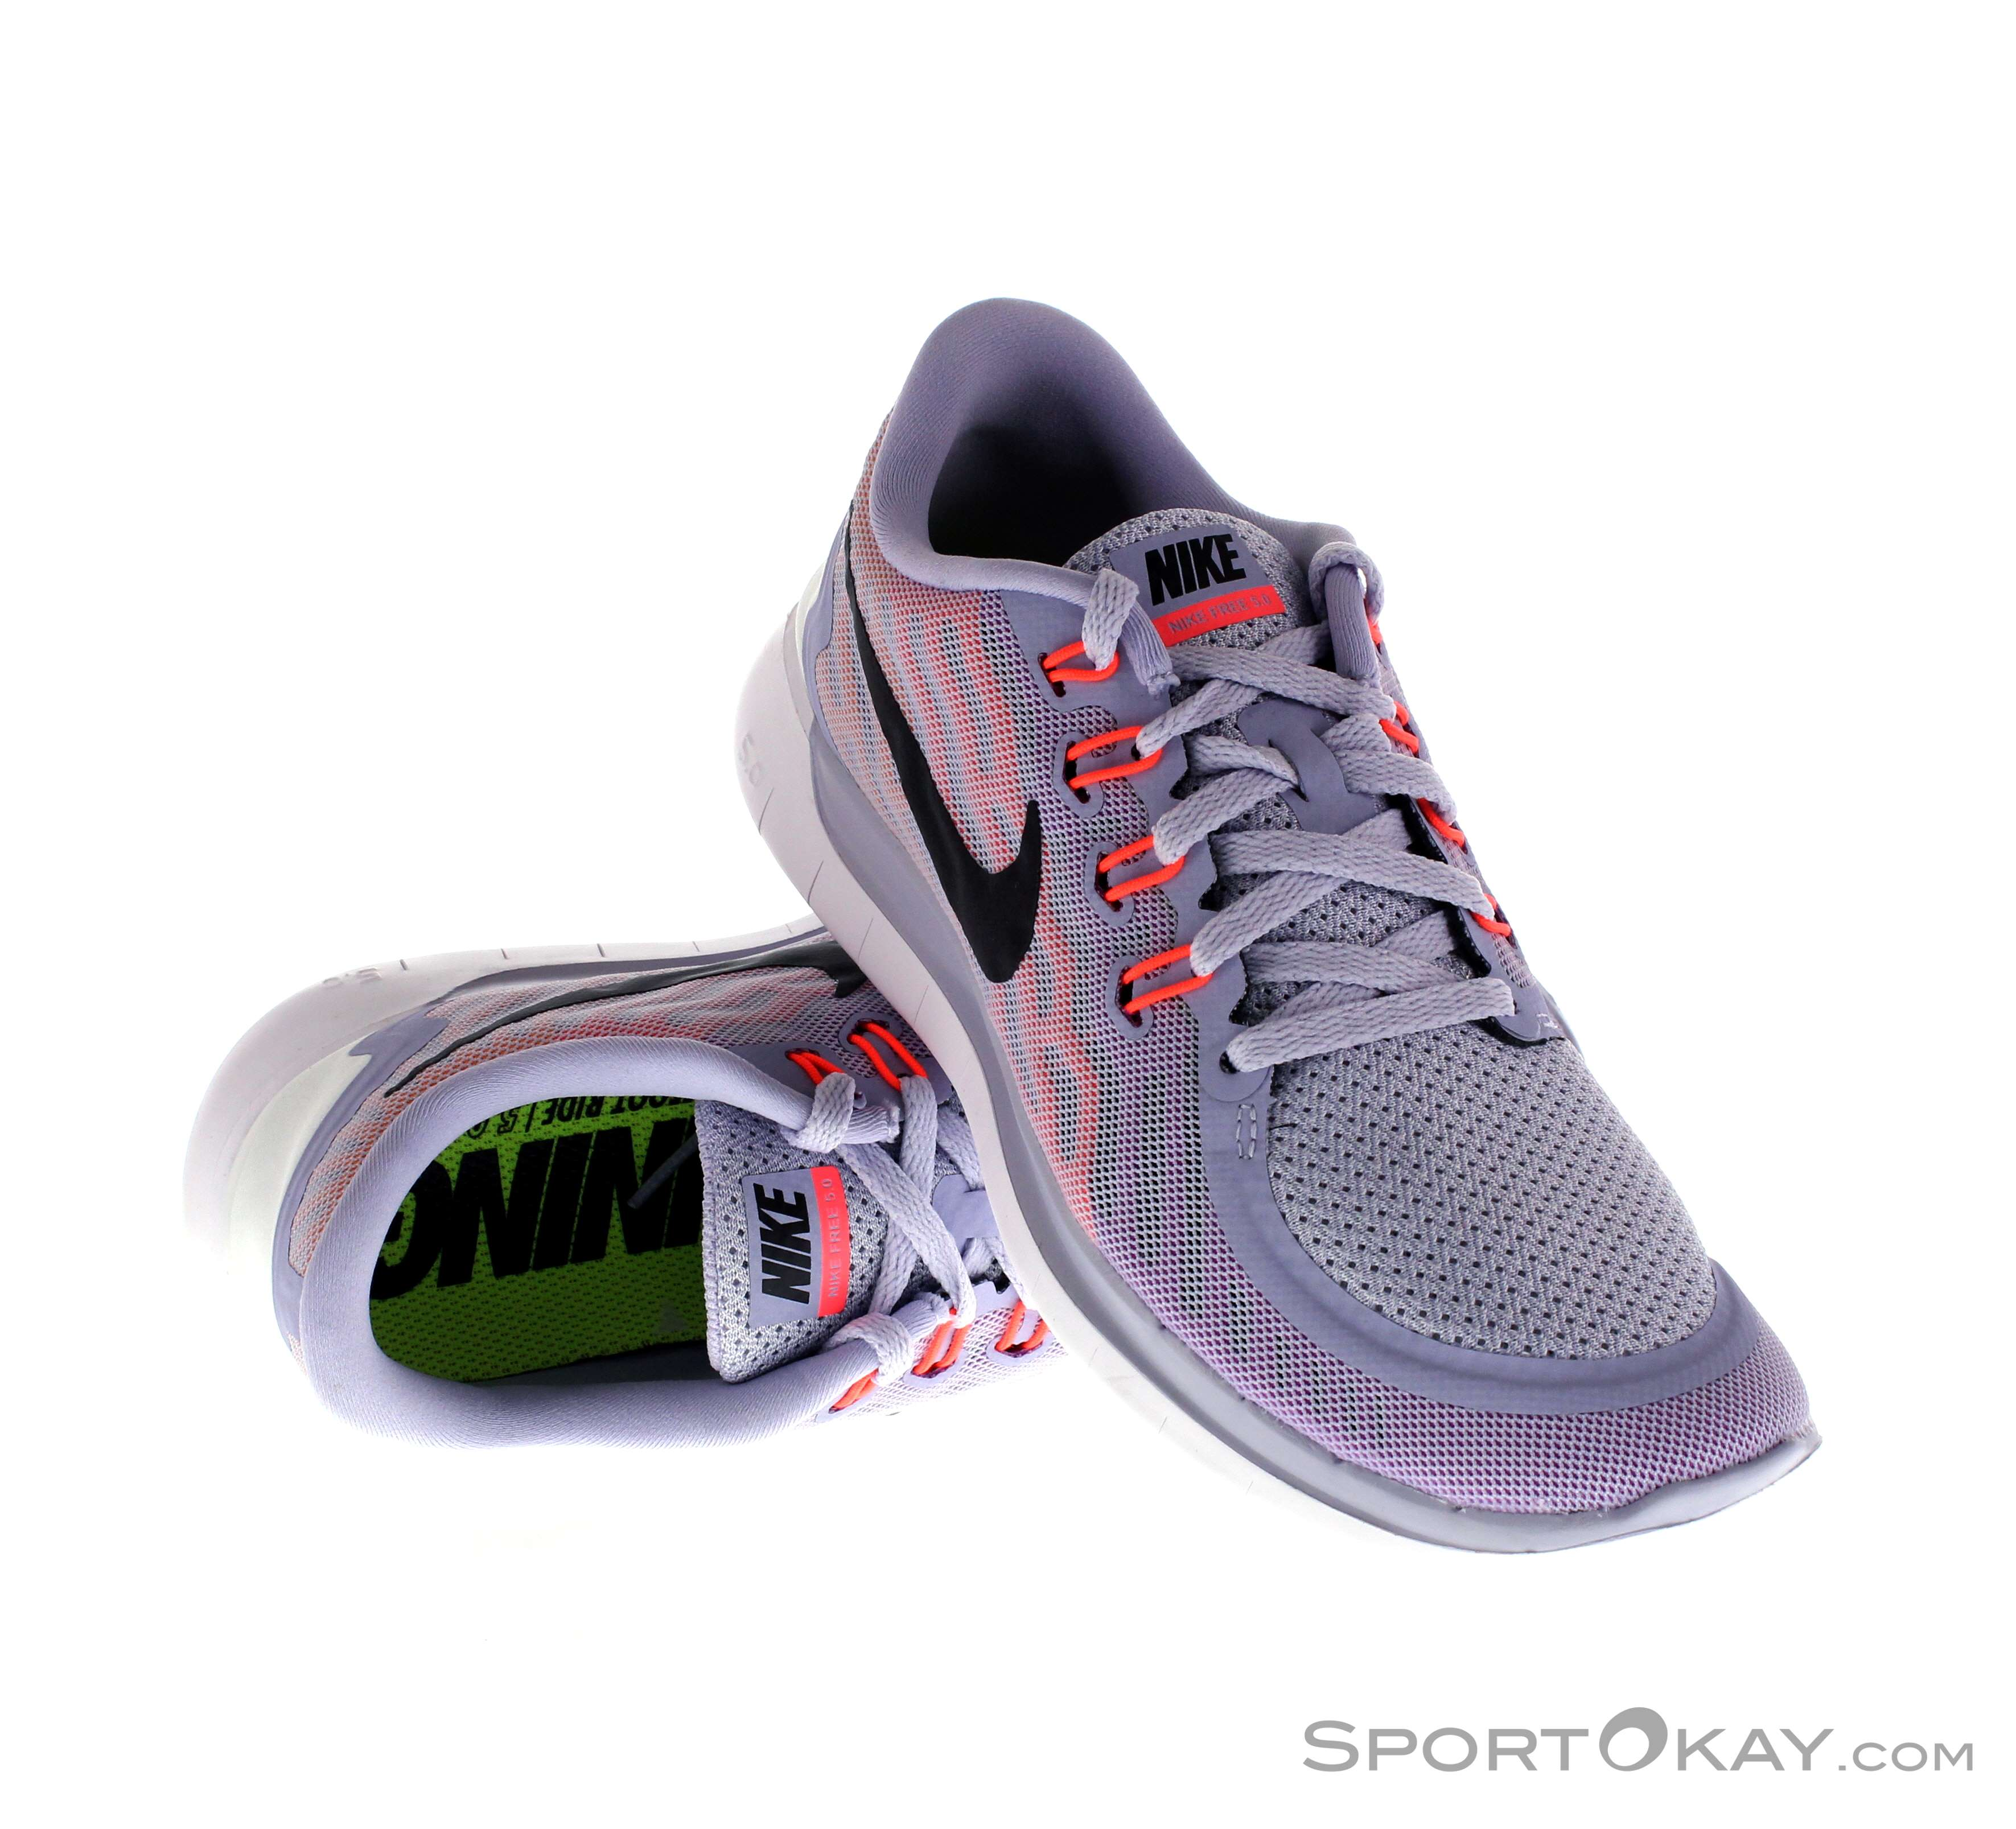 hot new products outlet super quality Nike Nike Free 5.0 Womens Running Shoes